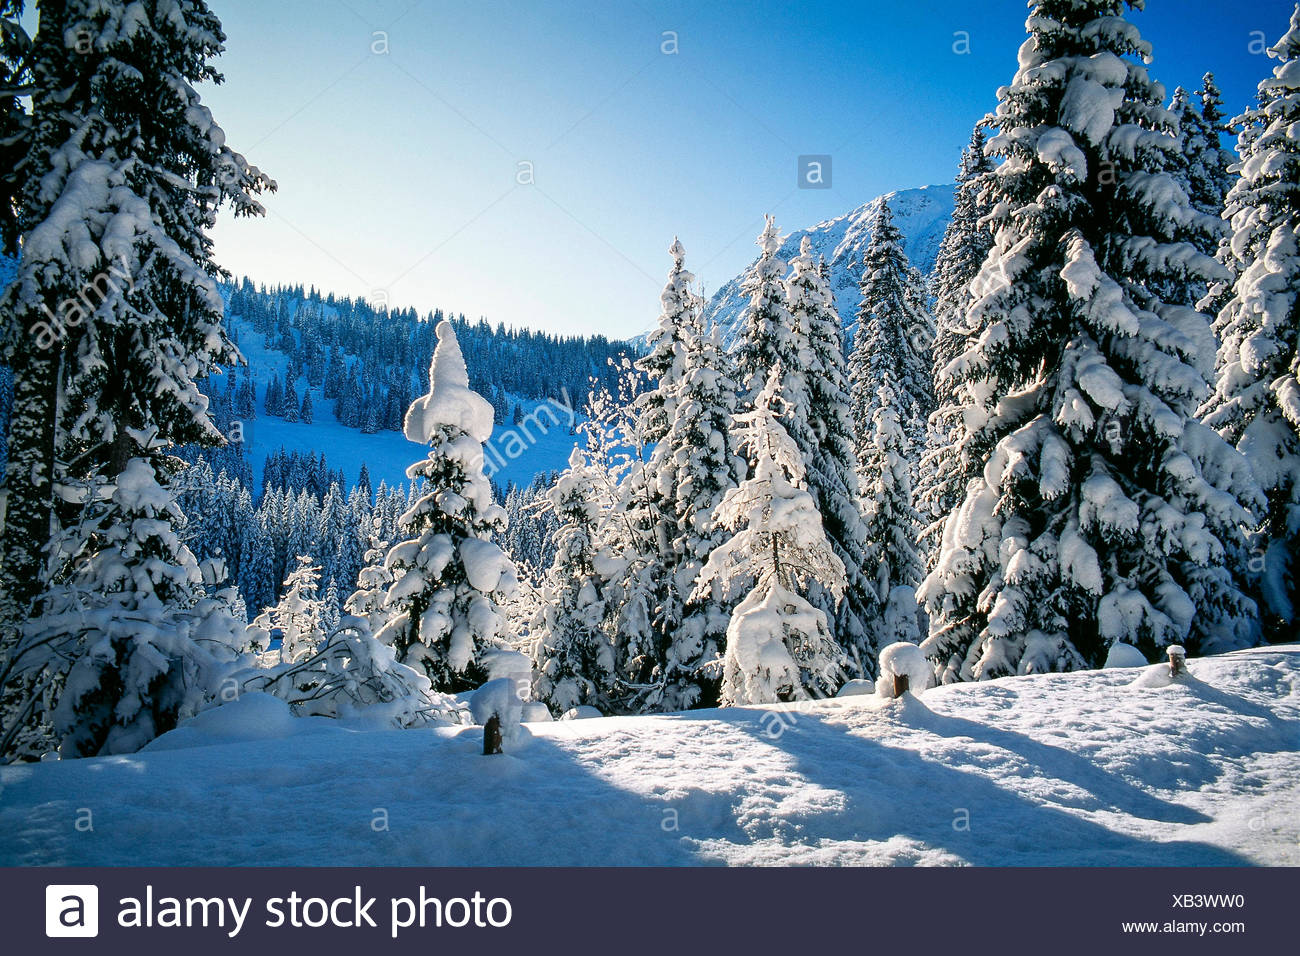 Snowy firs - Stock Image